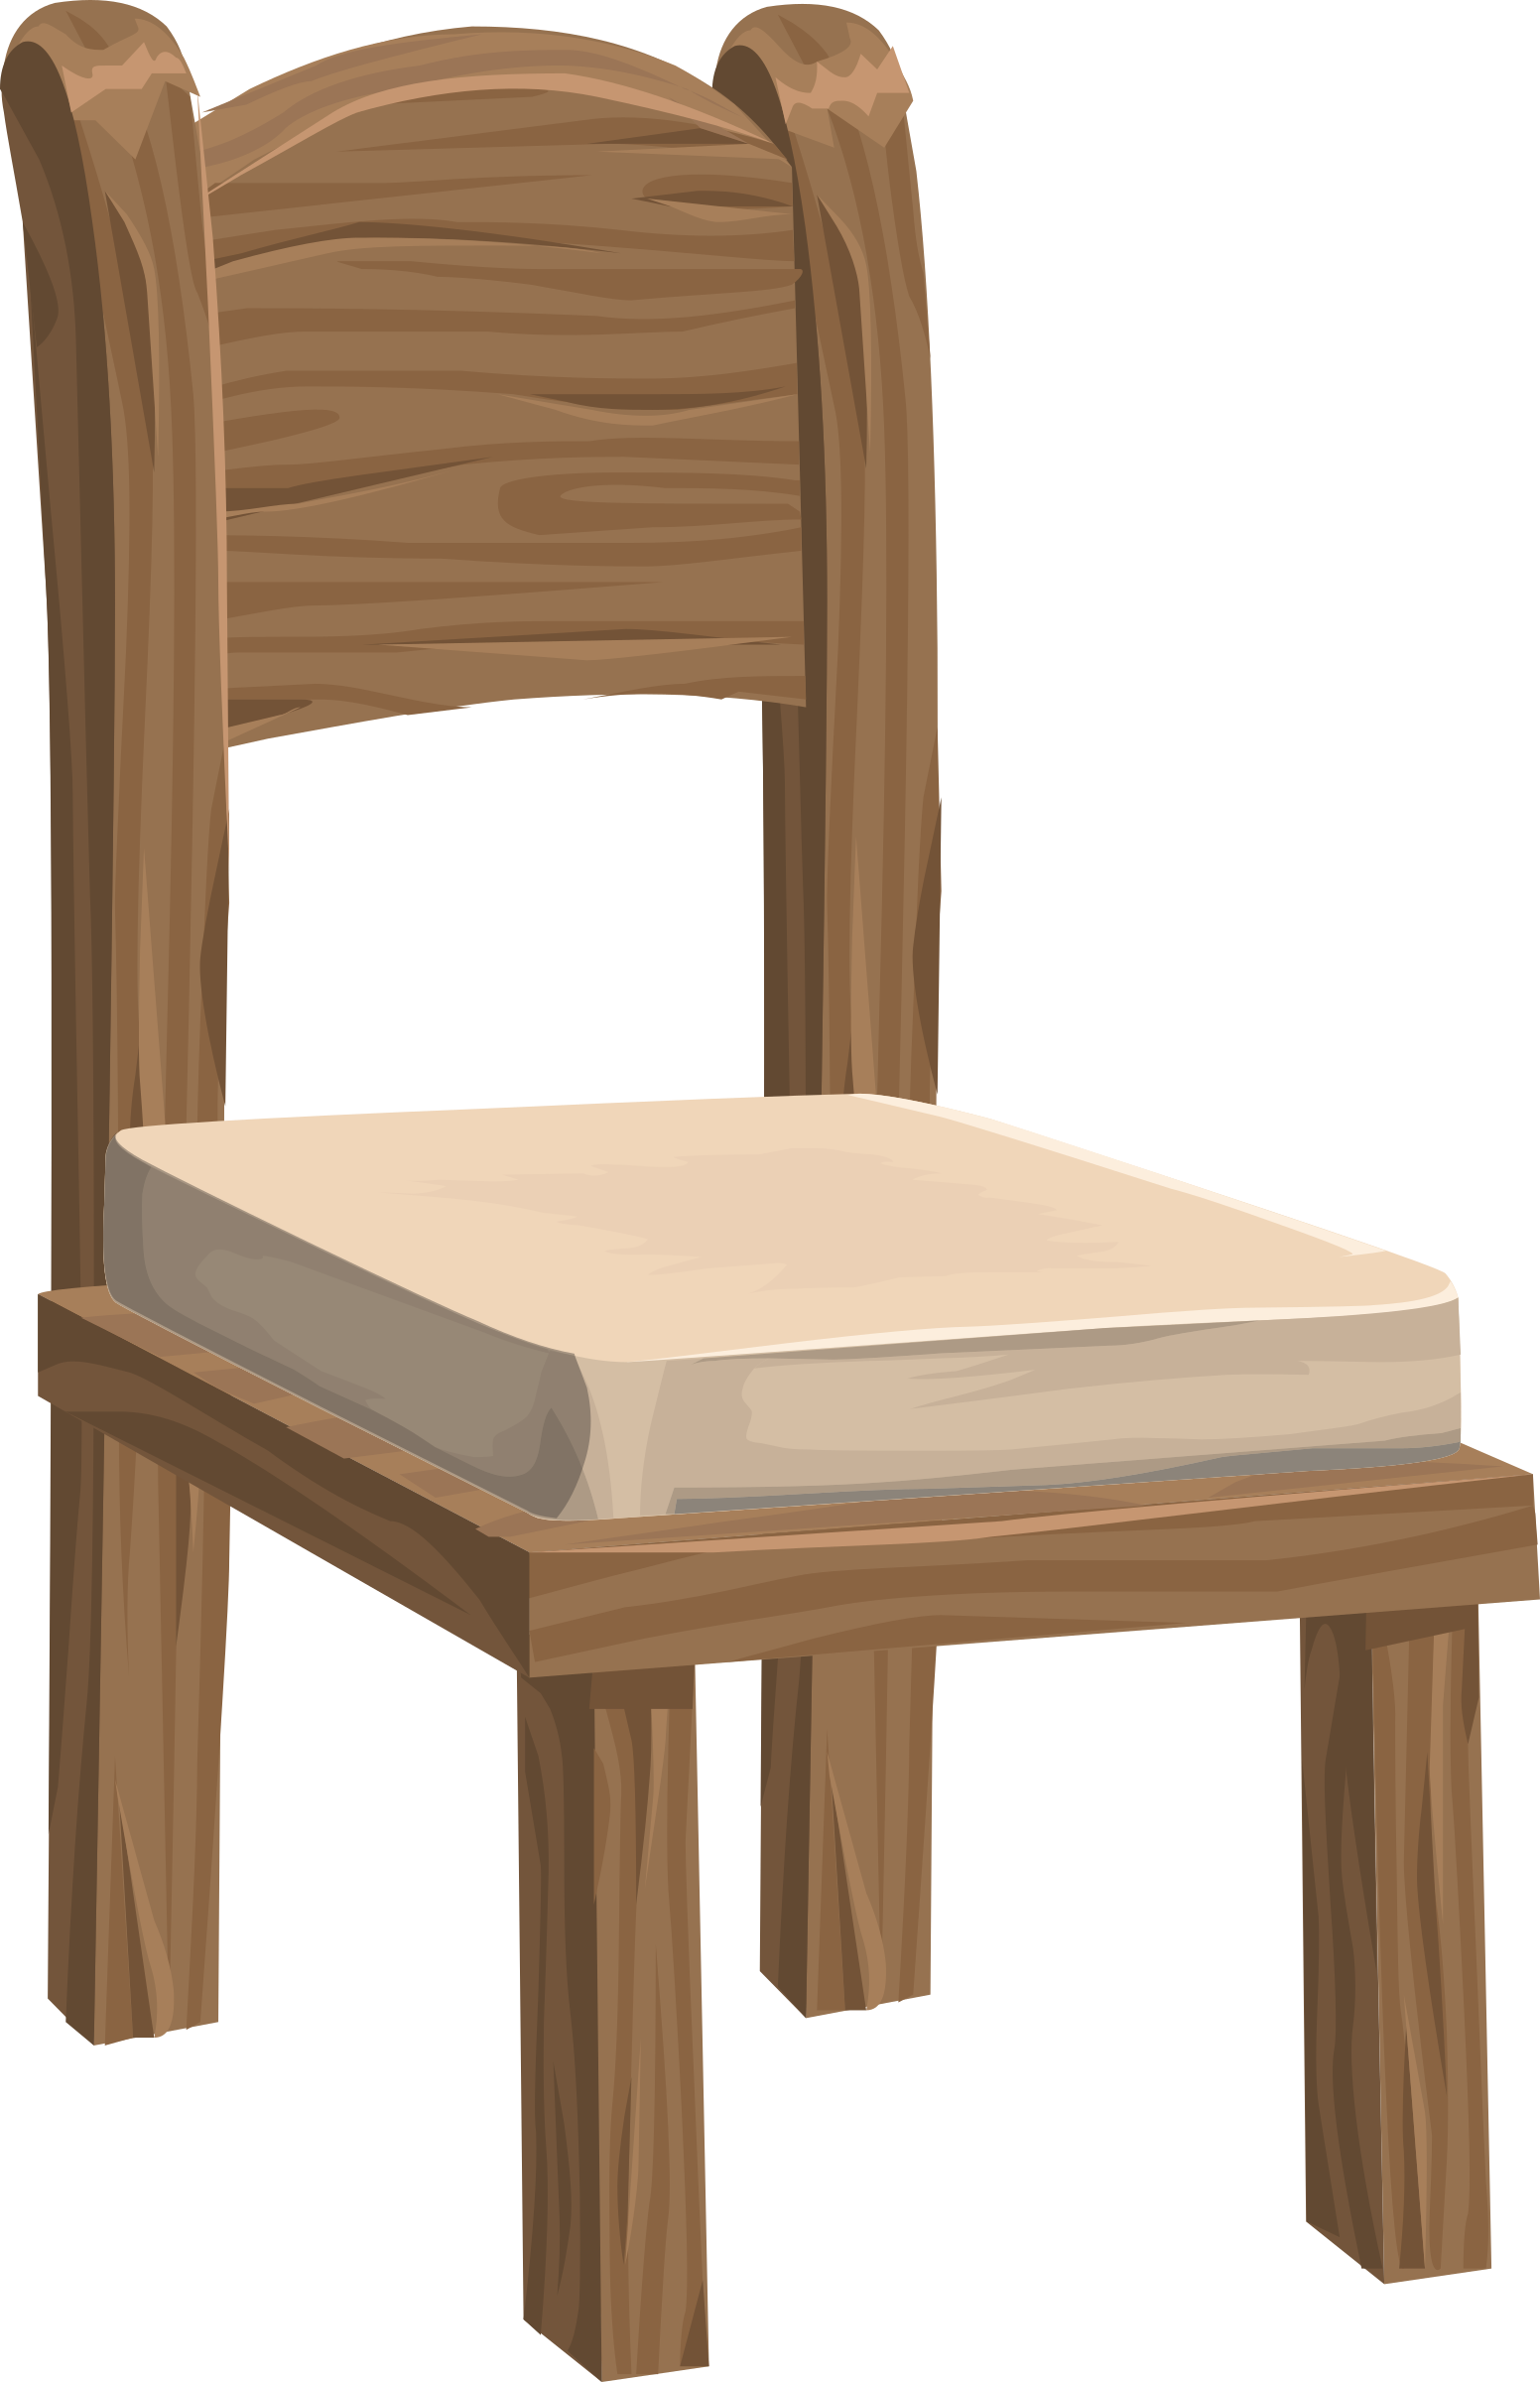 clipart chair from glitch rh openclipart org clipart chair pictures clipart chair massage